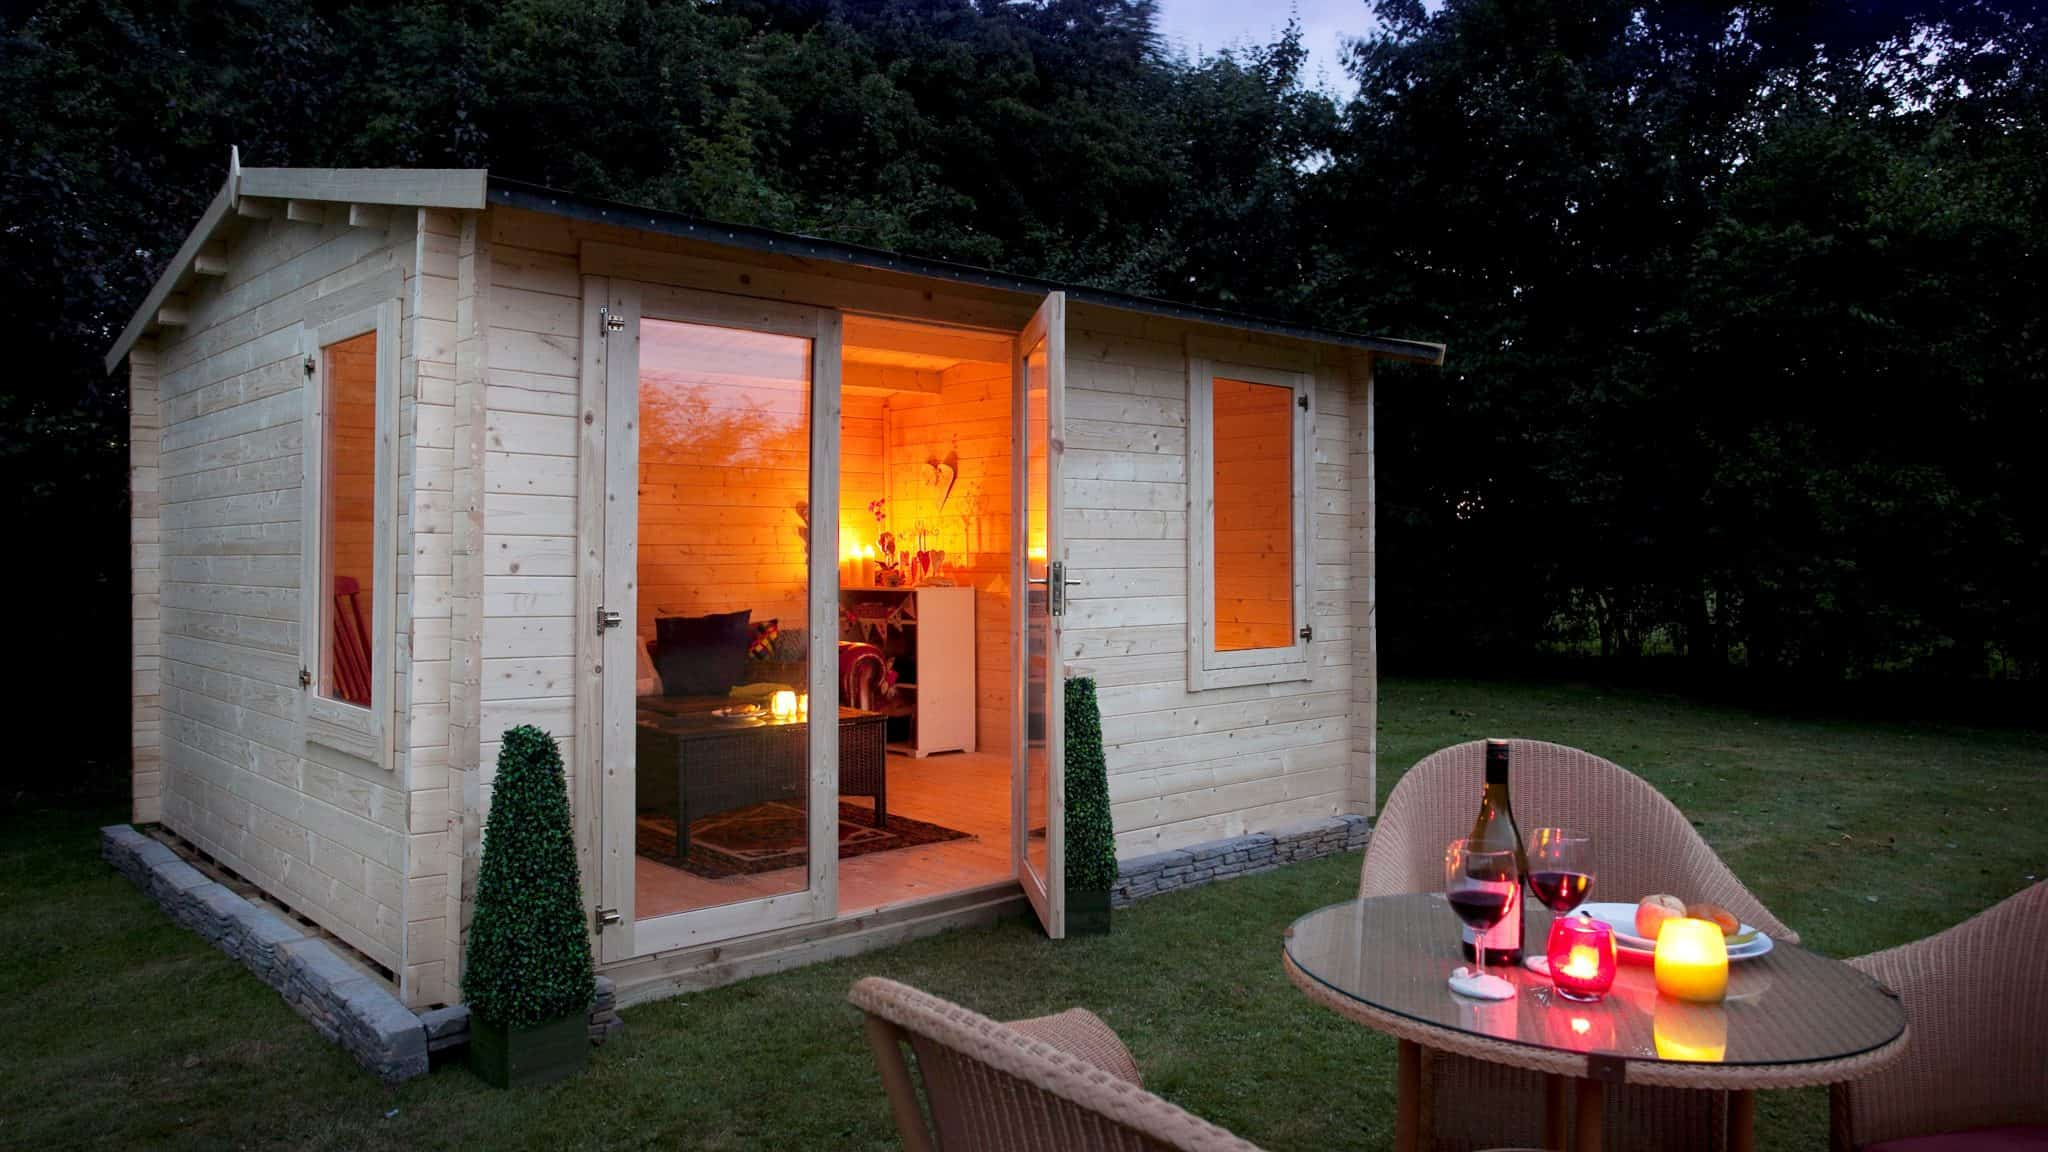 wooden shed summerhouse at the end of a garden in front of a small table with drinks and lights on it with its door open and lit up inside